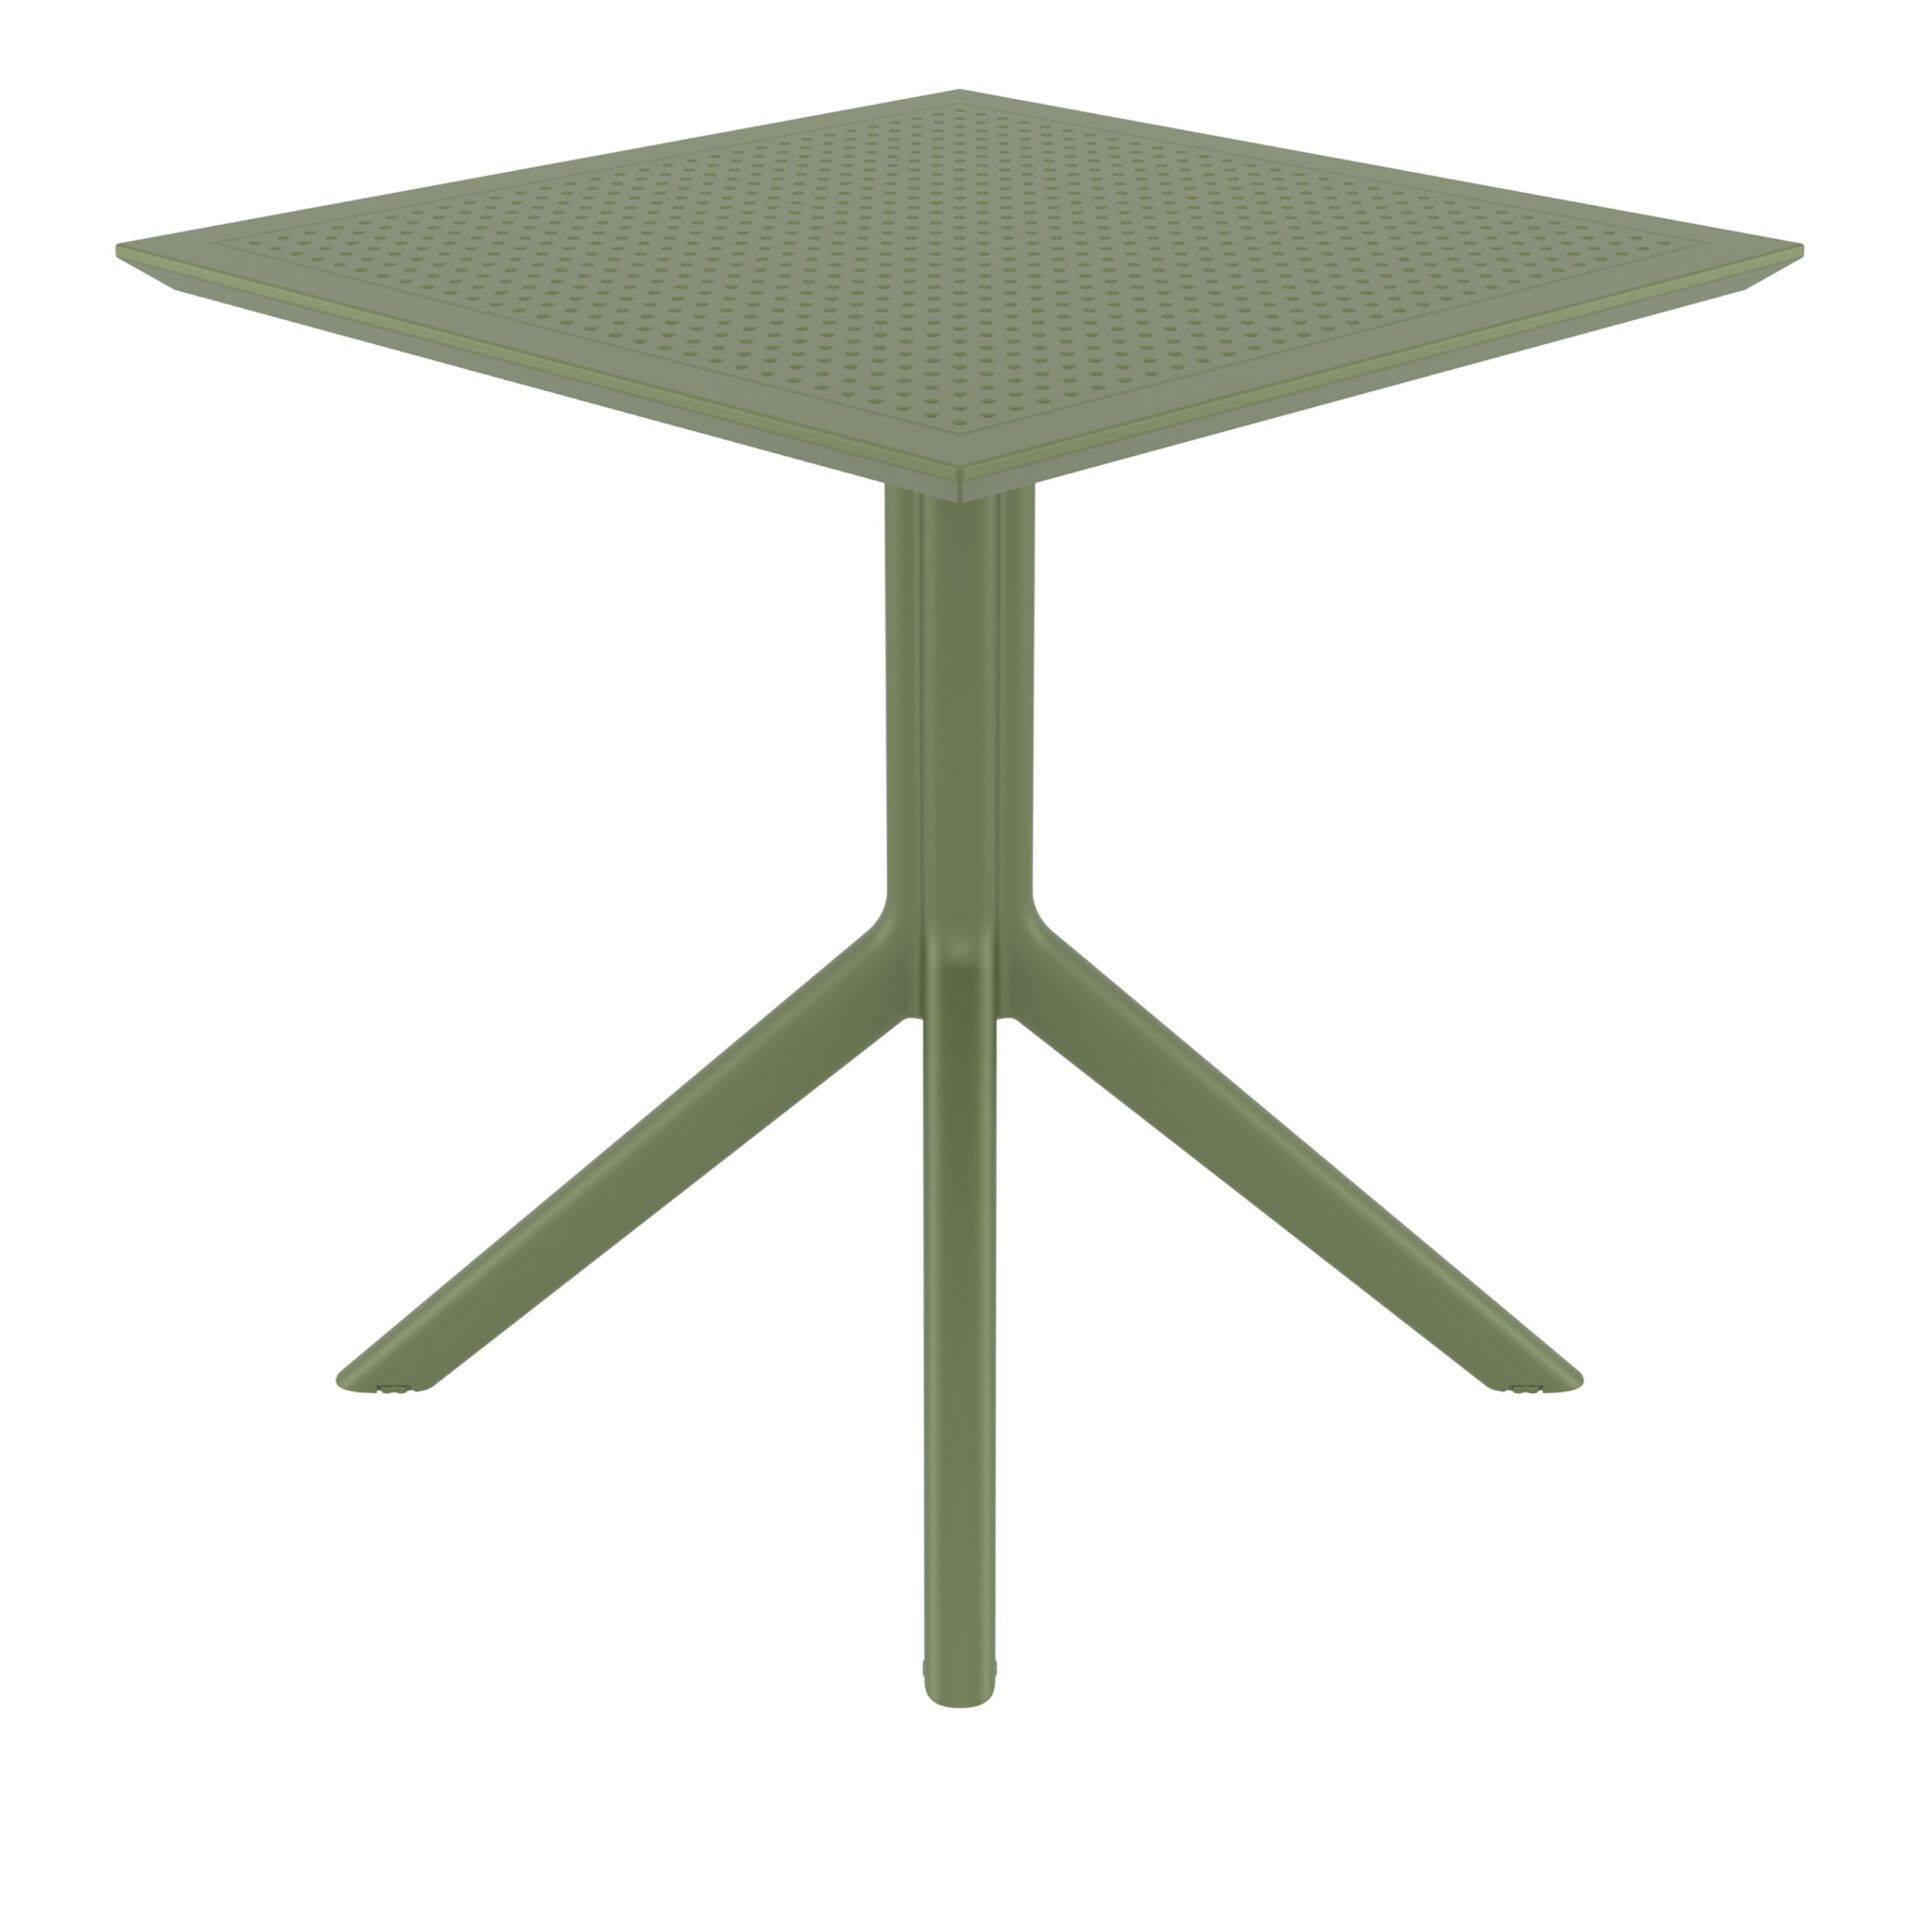 polypropylene outdoor cafe sky table 70 olive green side